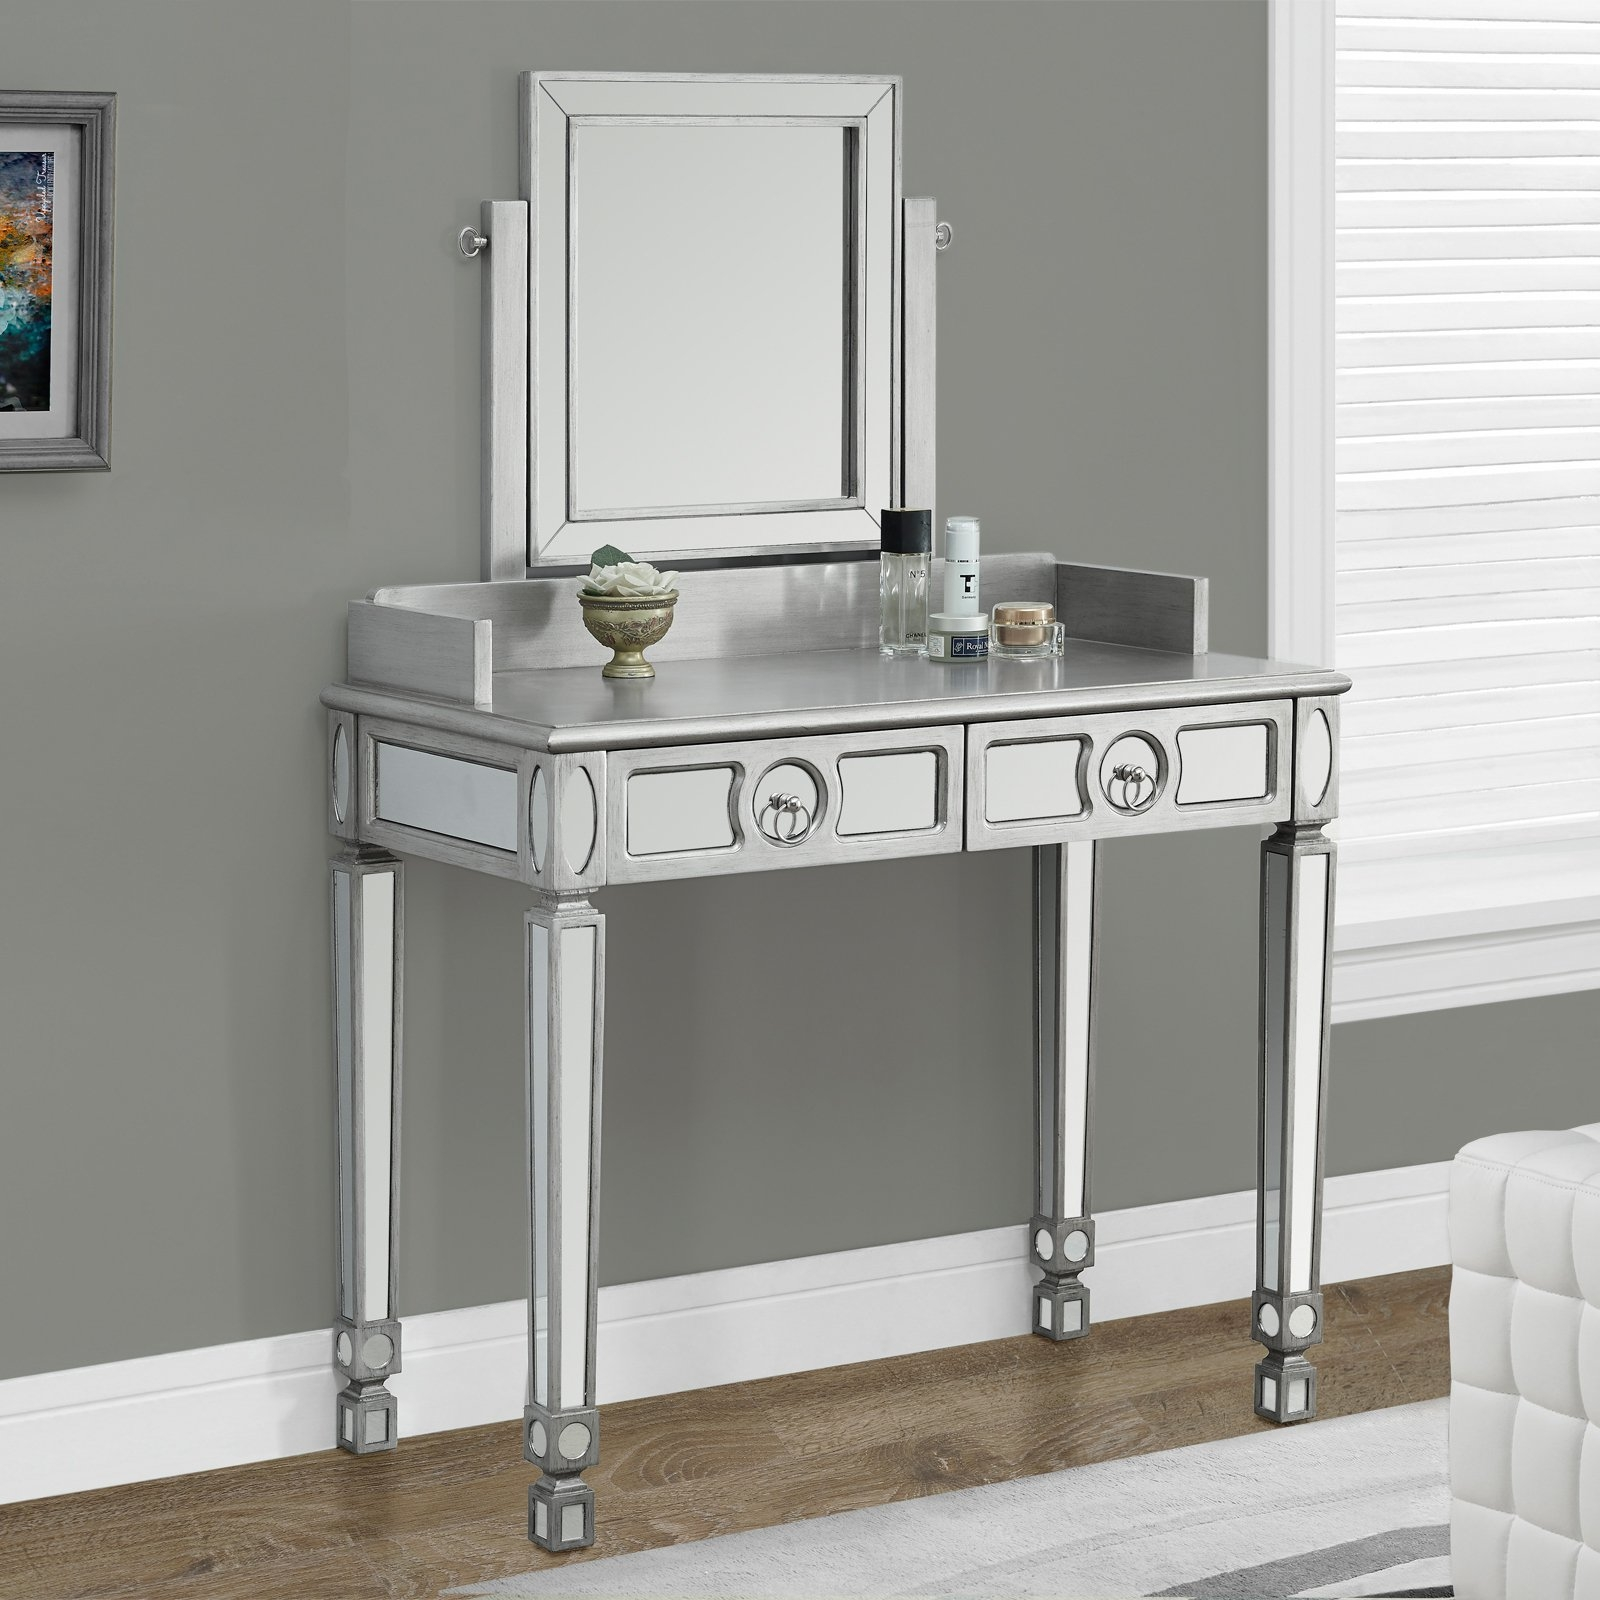 Interesting mirrored vanity for home furniture and vanity mirror with lights